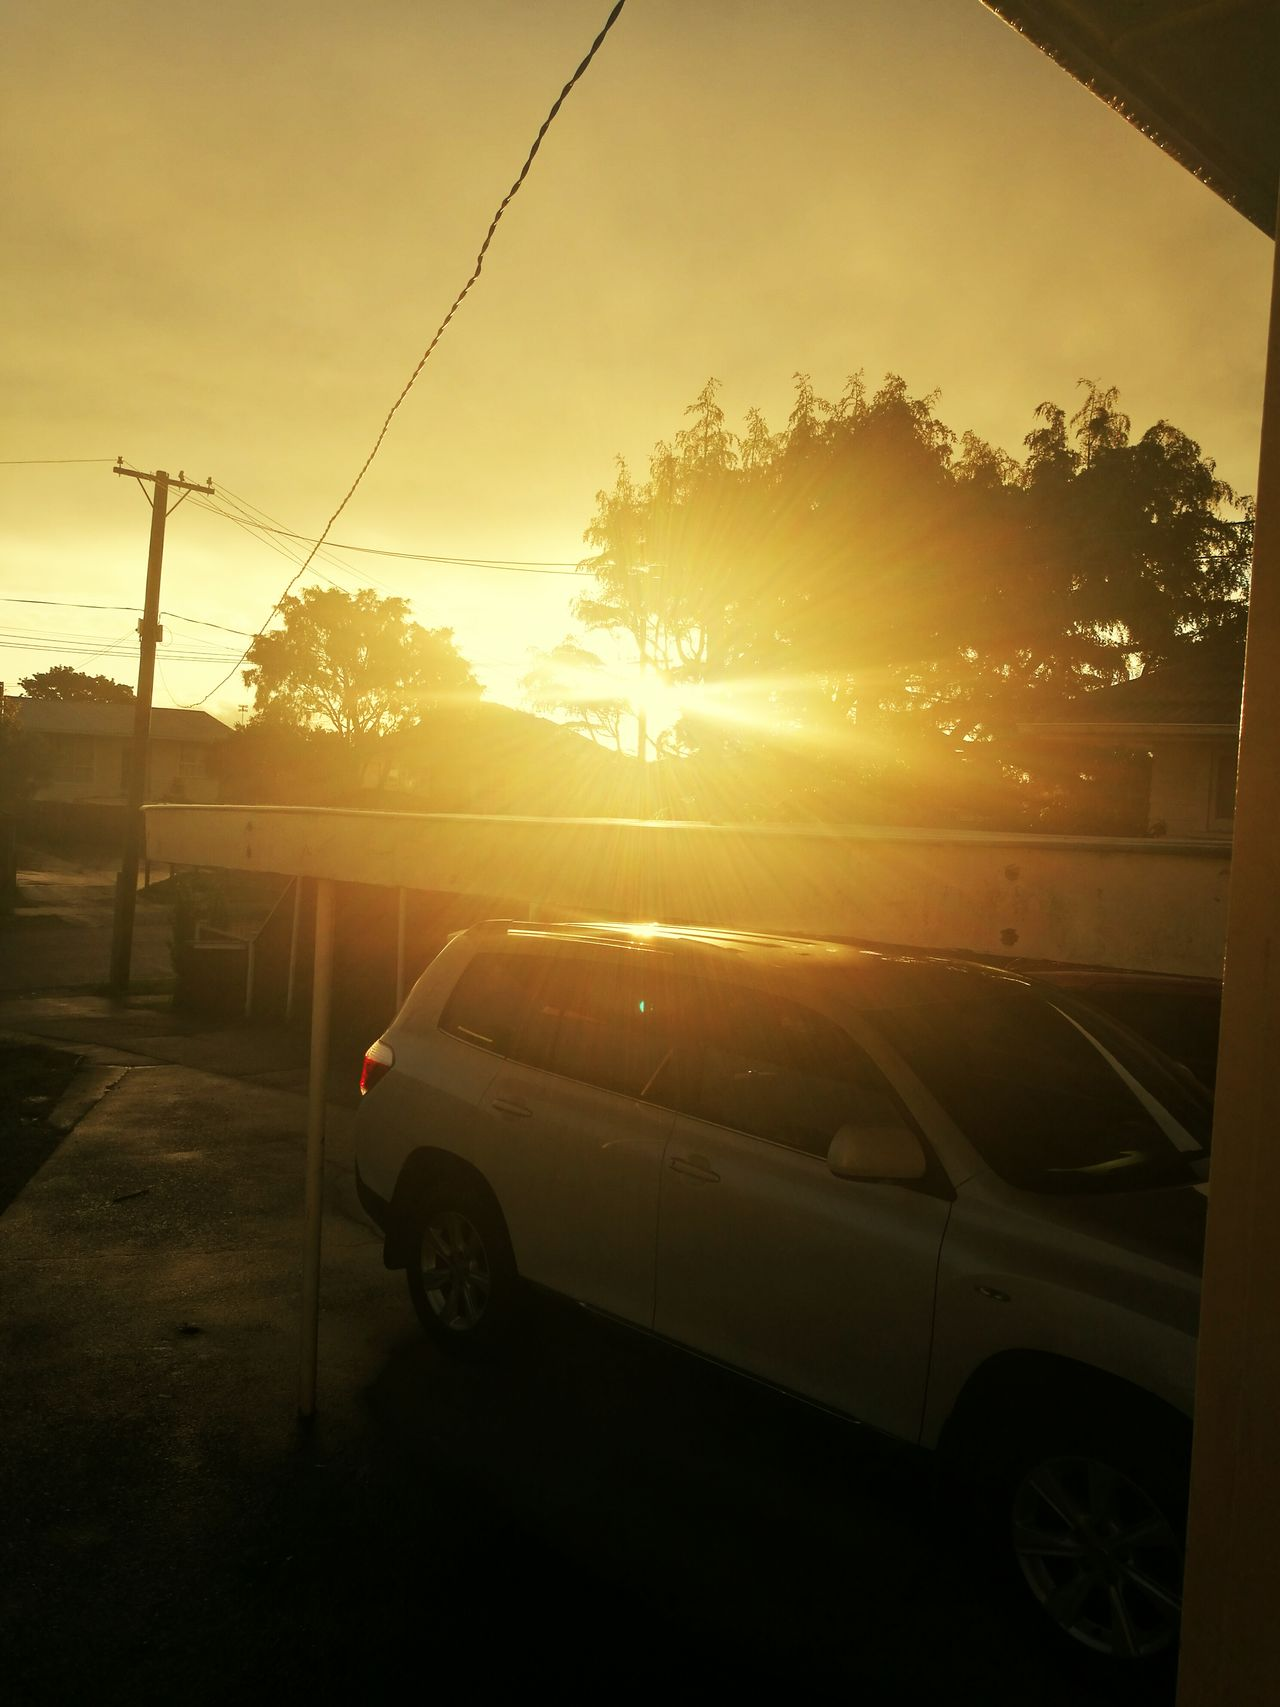 Sunset Lovers Sunset My Frontyard My Dads Car Carport Outdoors Power Lines My Front Door My Point Of View Outside Photography Rainy Days ☔ Auckland, New Zealand Mangere East Auckland Sunlight